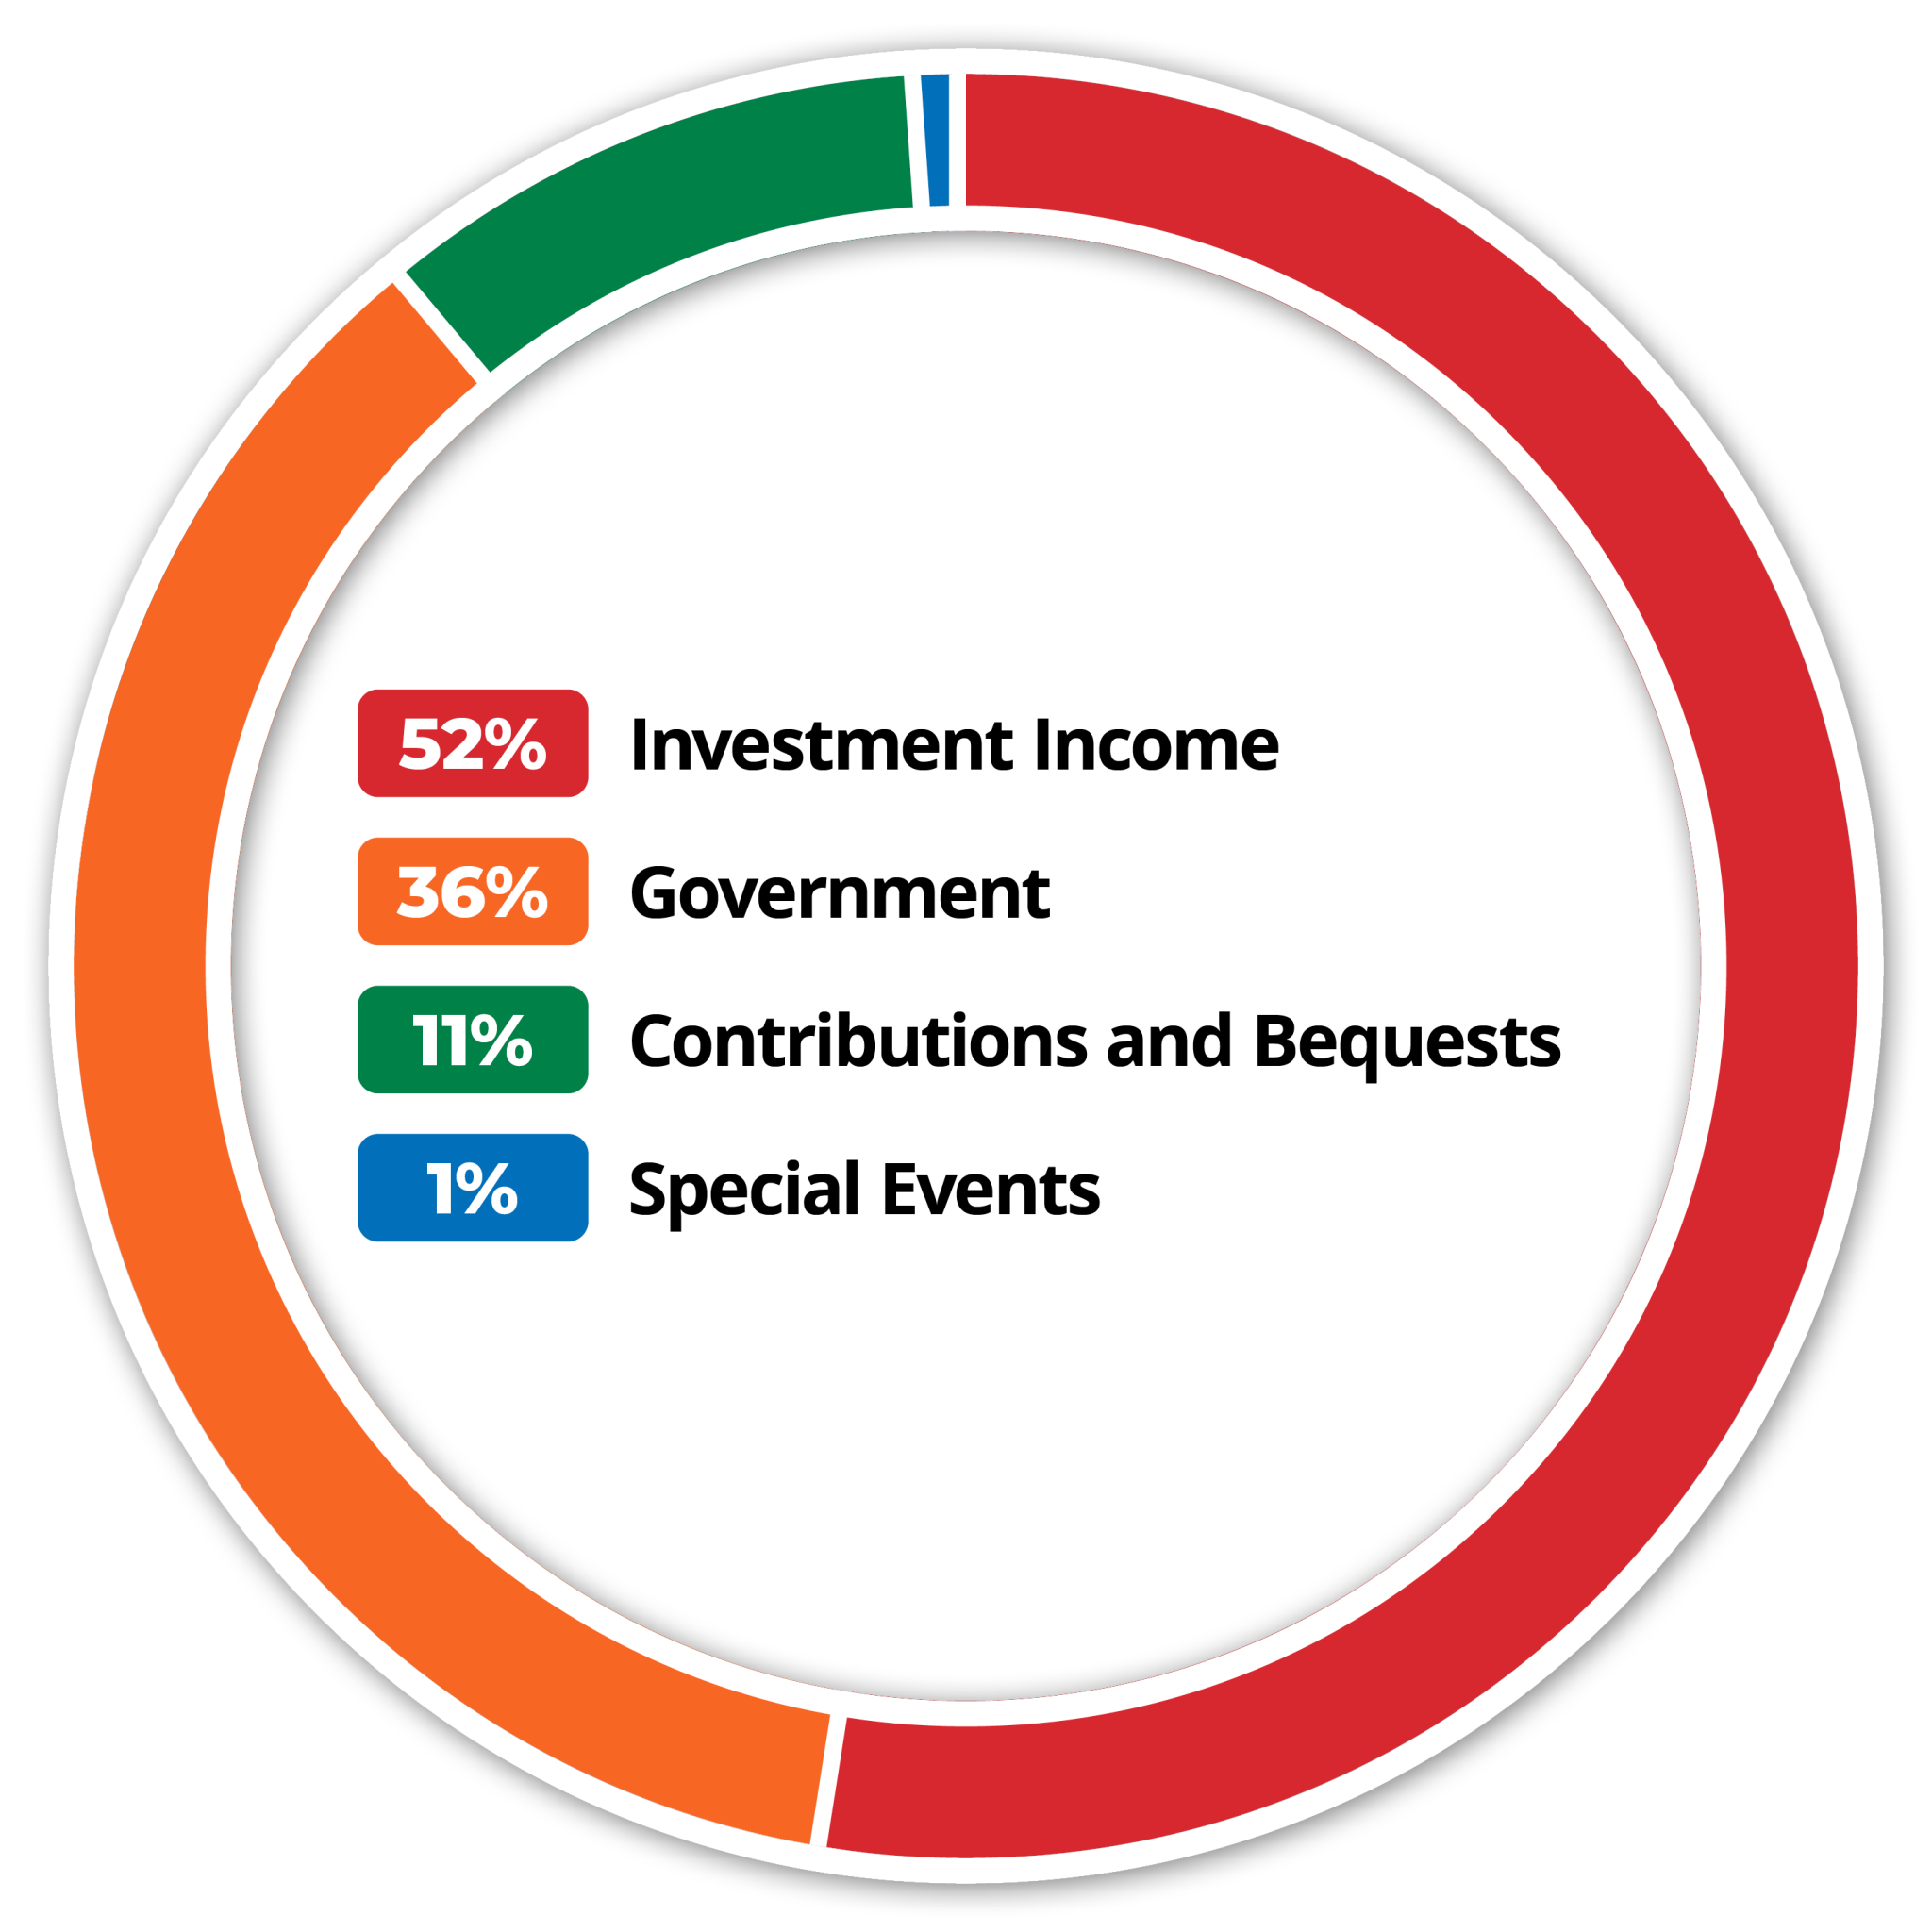 Donut chart representing VISIONS revenue sources, 52%, Red: Investment income. 36%, Orange: Government. 11%, Green: Contributions and Bequests. 1%, Blue: Special events.